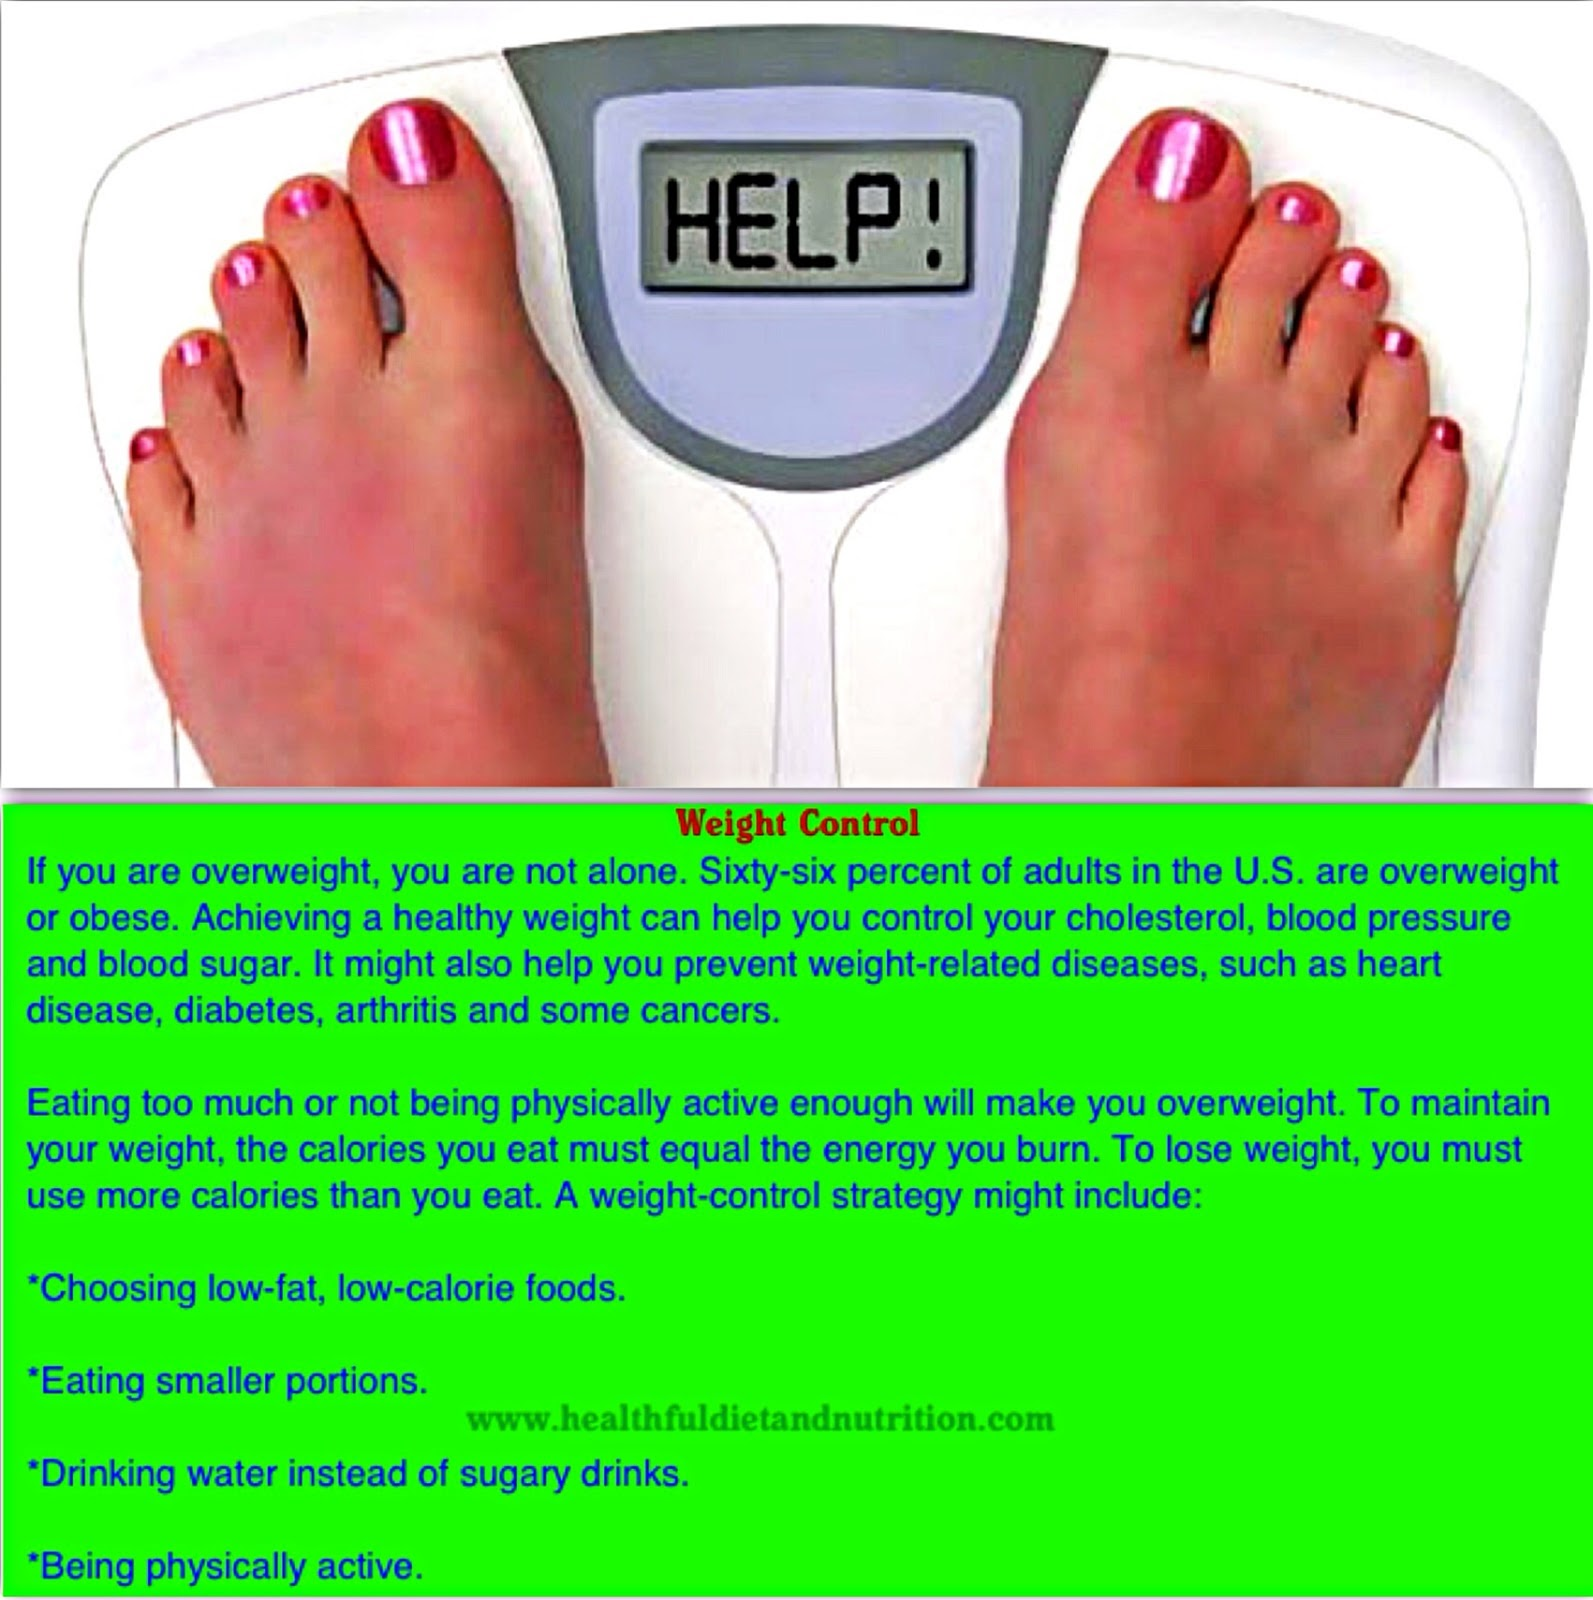 Body Weight Control